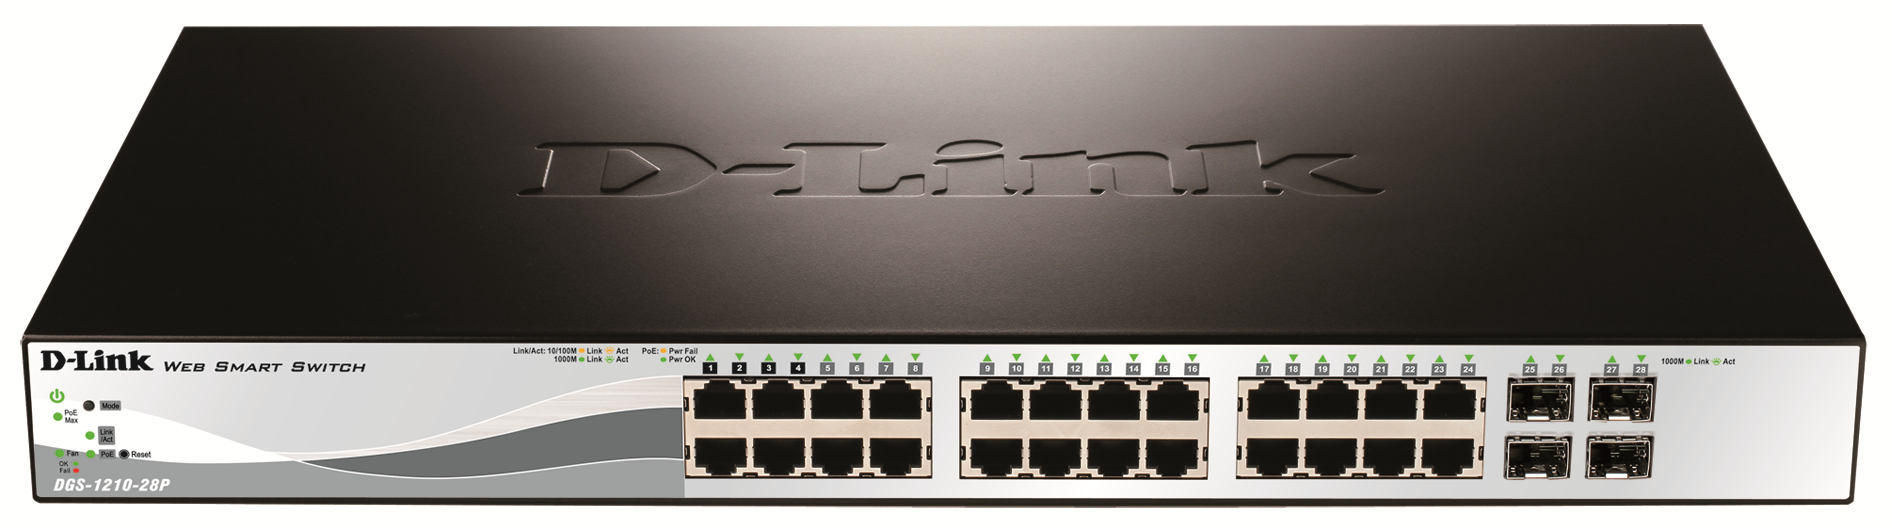 D-Link 24 PoE 10/100/1000 Base-T Port With 4 X 1000Base-T /SFP Ports DGS-1210-28P - C2000